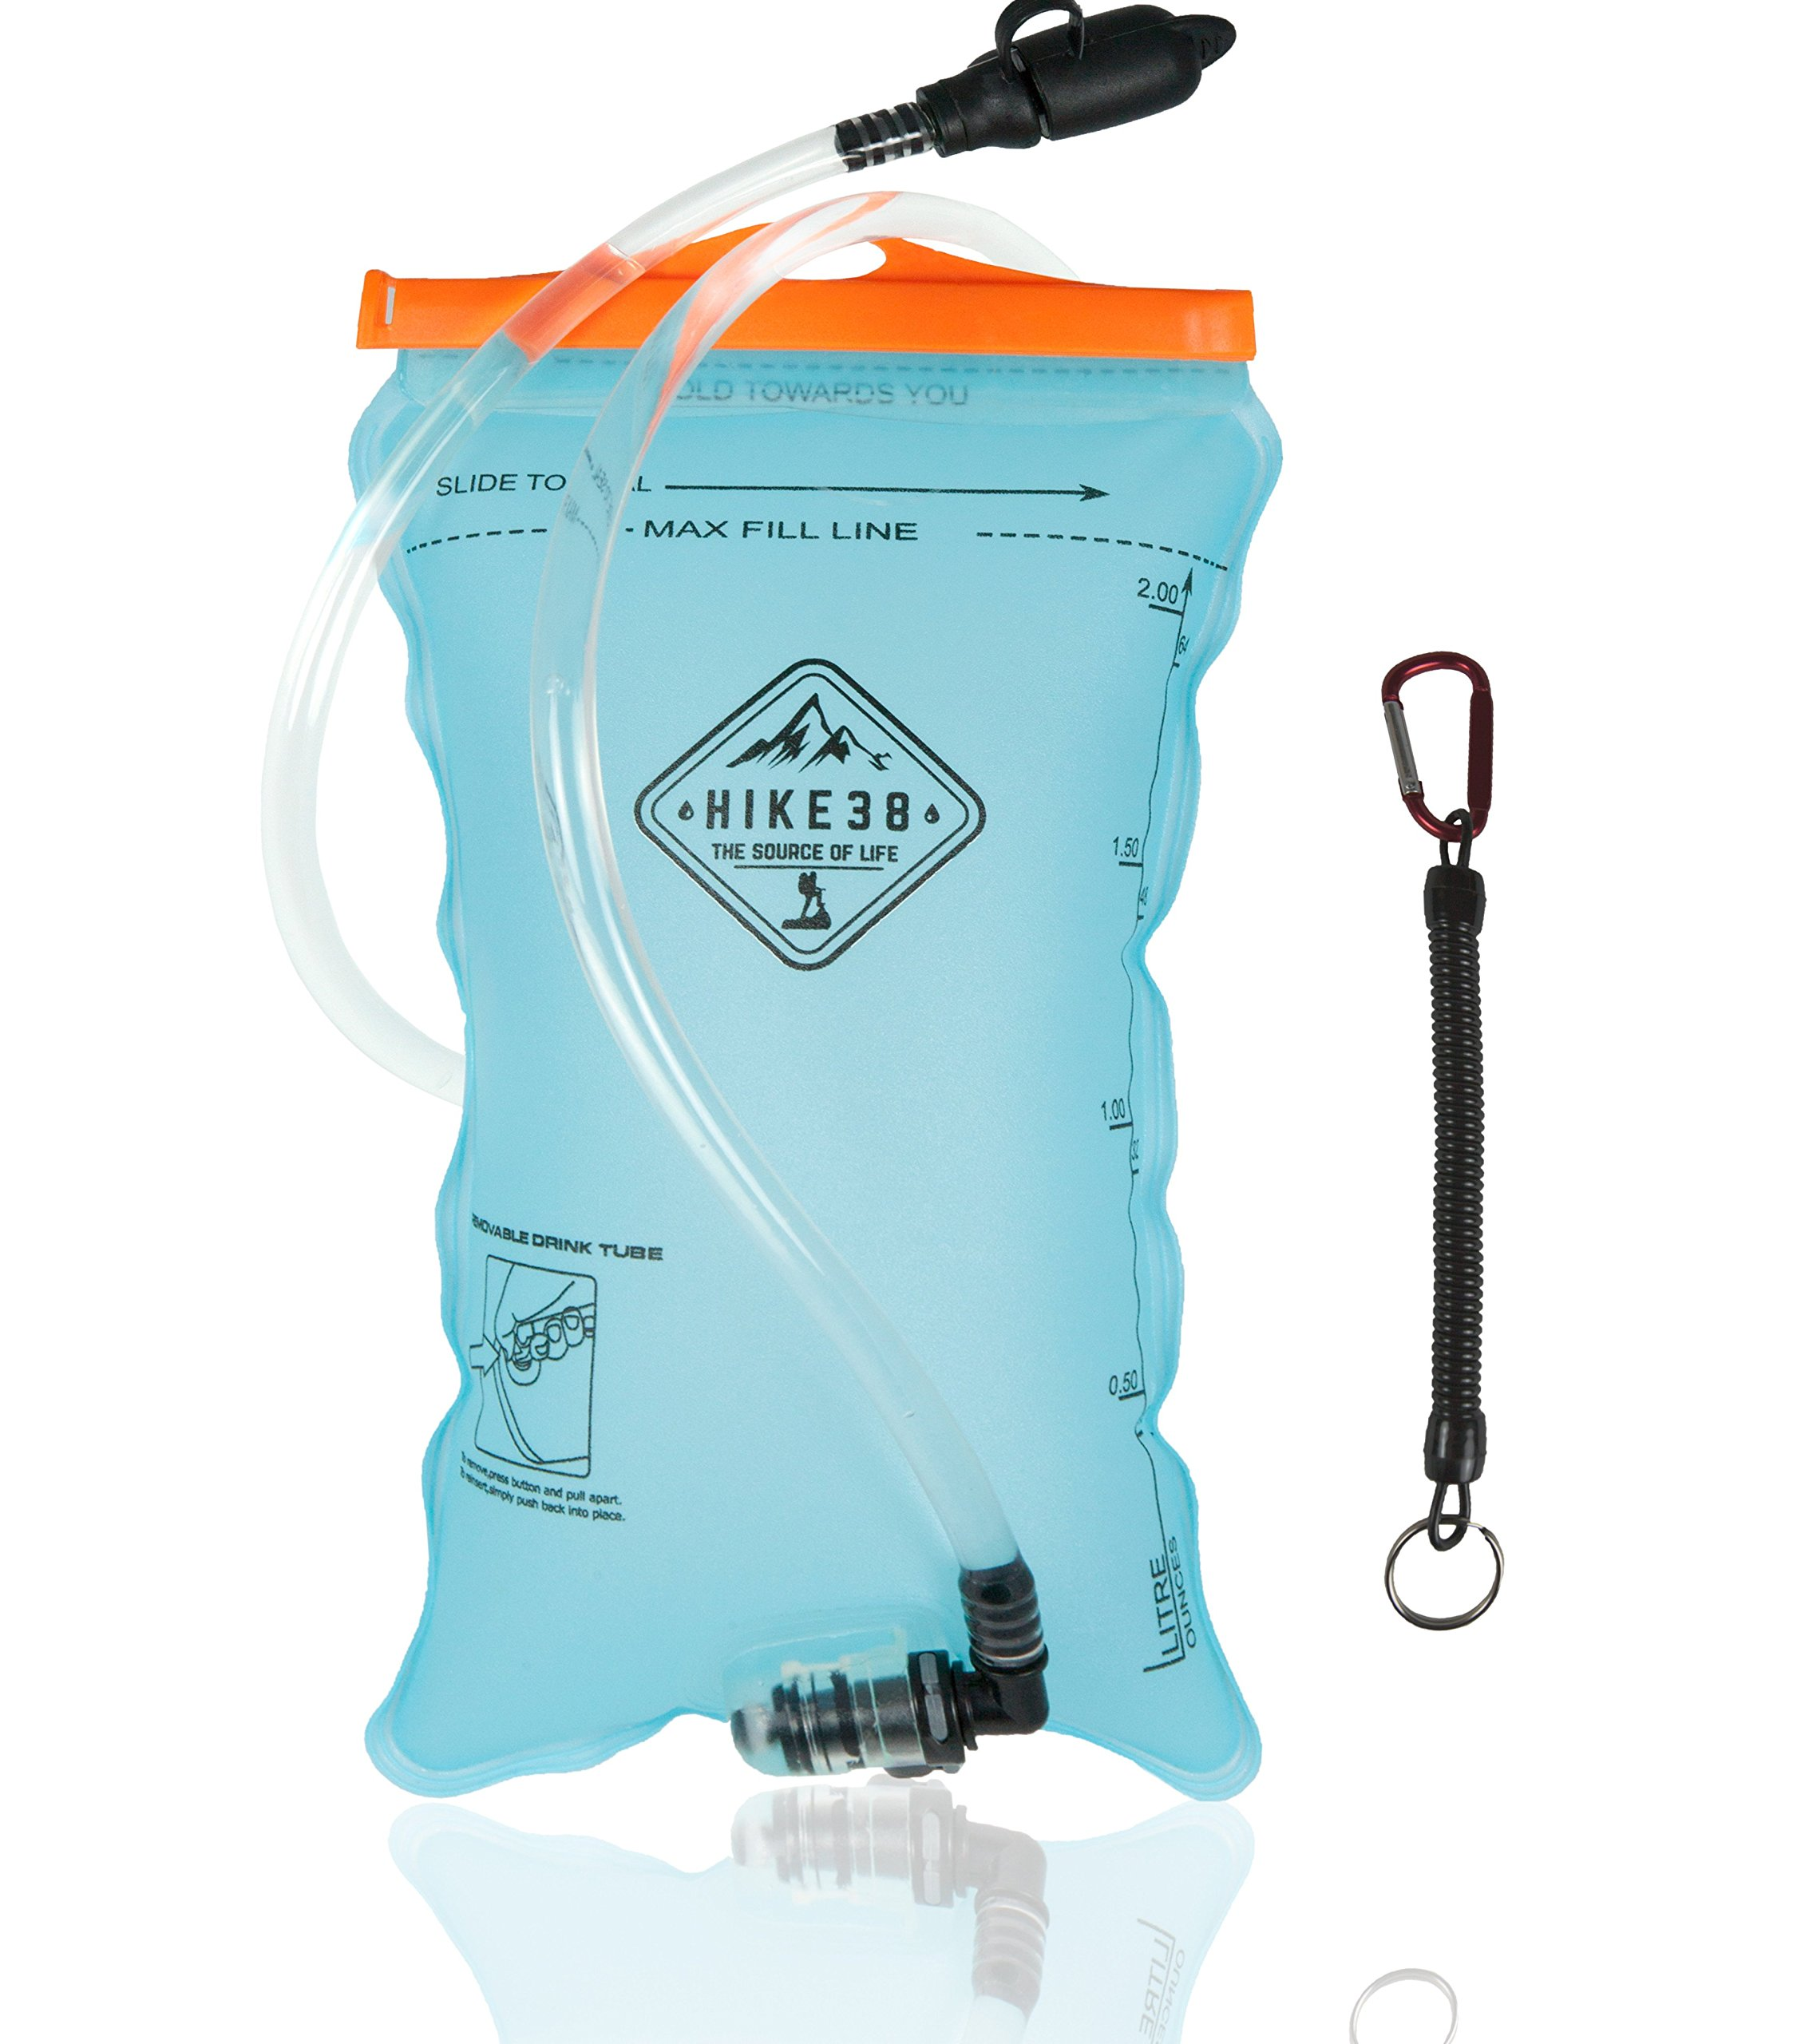 Hike38 - Hydration Bladder for Water Pack - 2 Liter Reservoir for Backpack -Taste Free Bladders for Hiking, Cycling - Extra Large Opening for Easy Cleaning & Filling - with Usefull Lanyard Carabiner